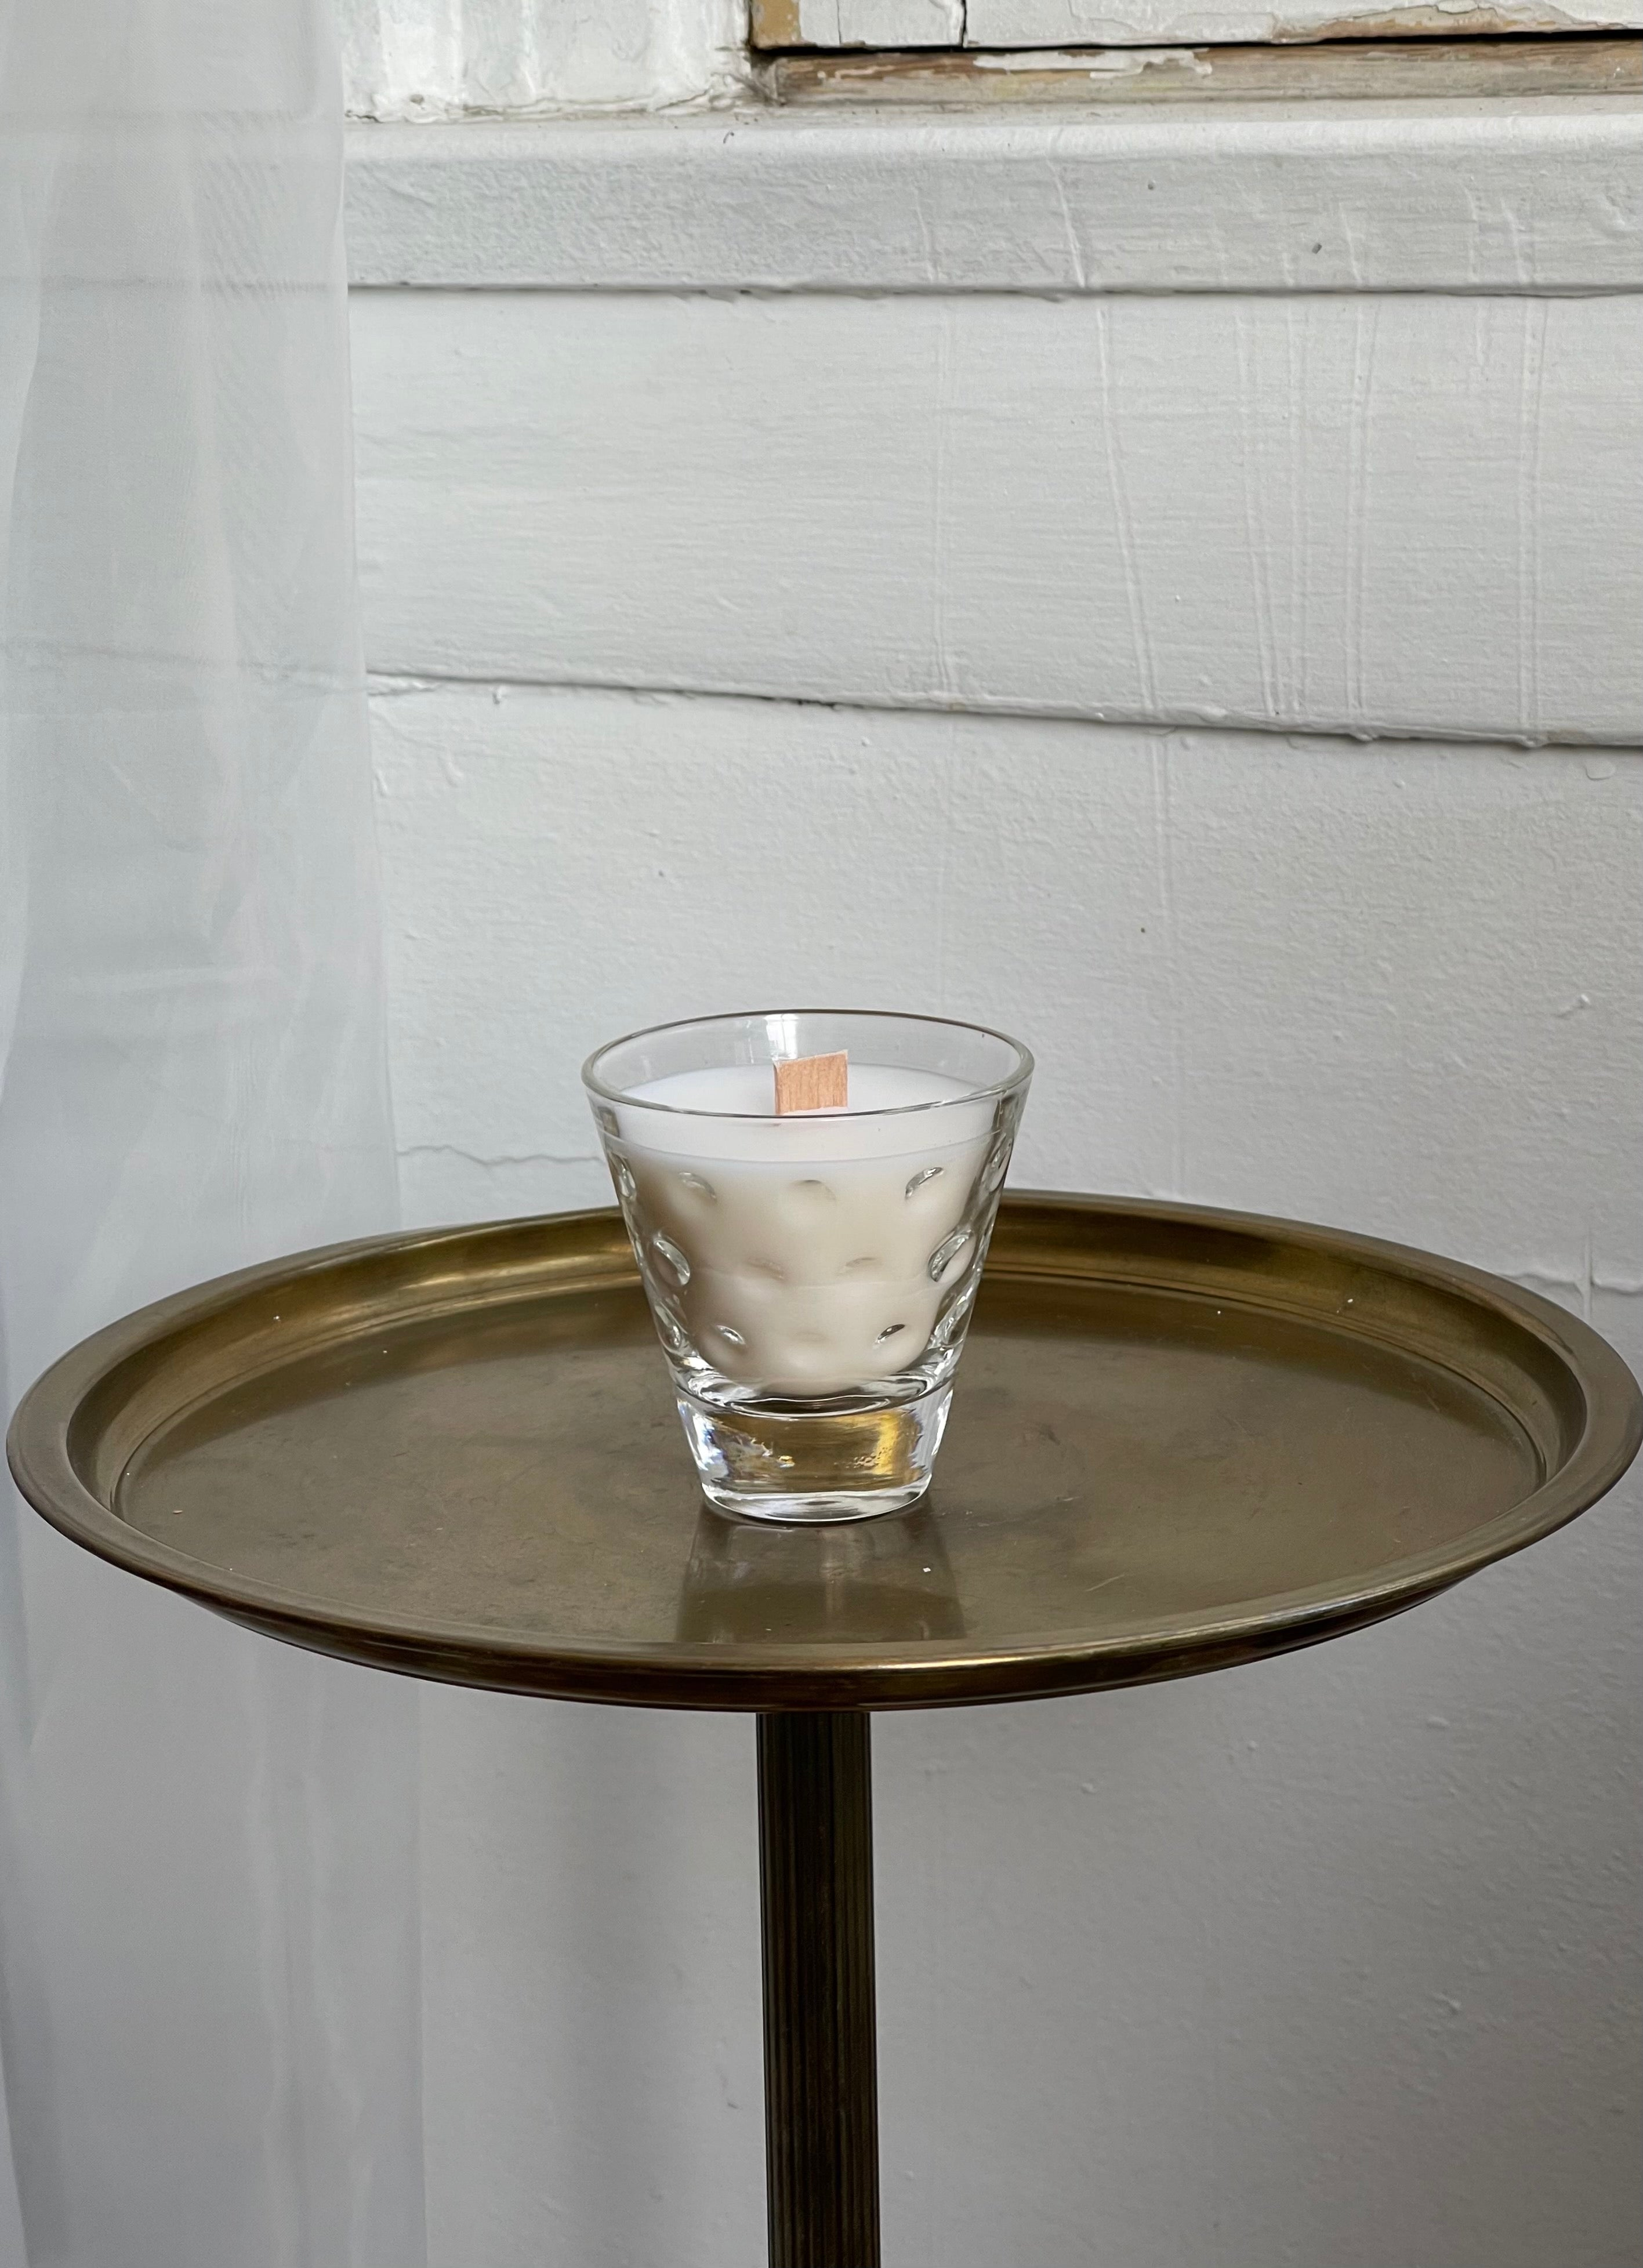 hand-crafted candle, w/ vintage petite glass